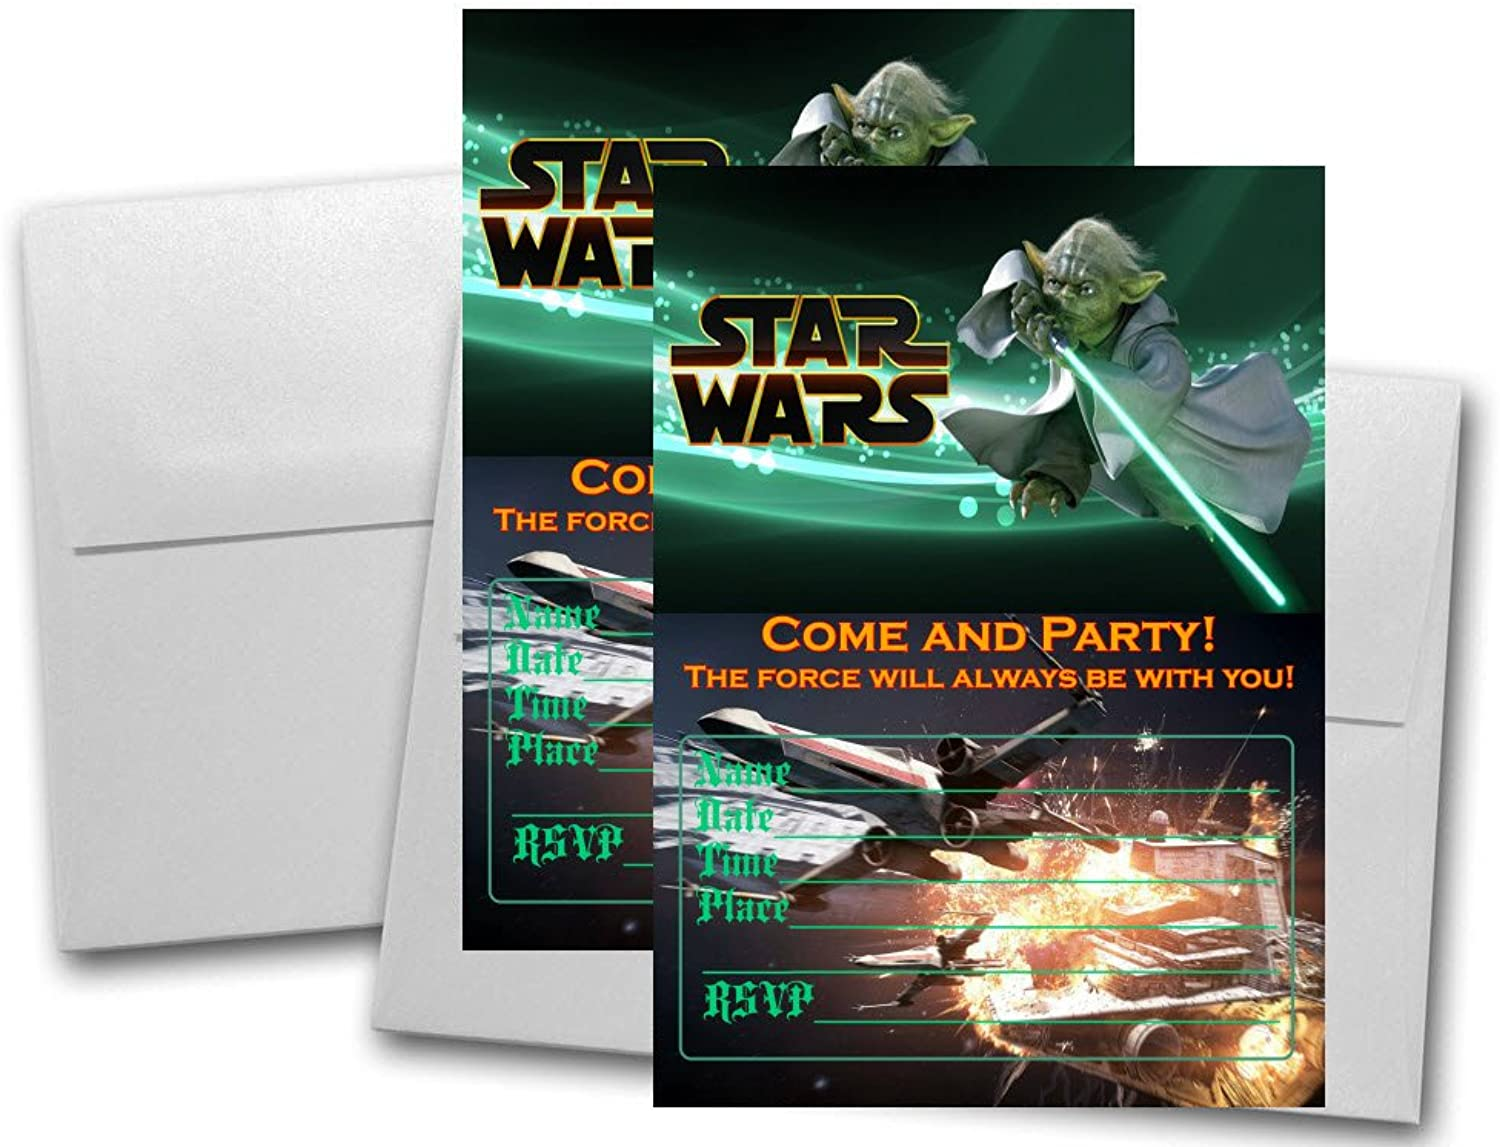 12 STAR WARS Birthday Invitation Cards (12 White Envelops Included)  1